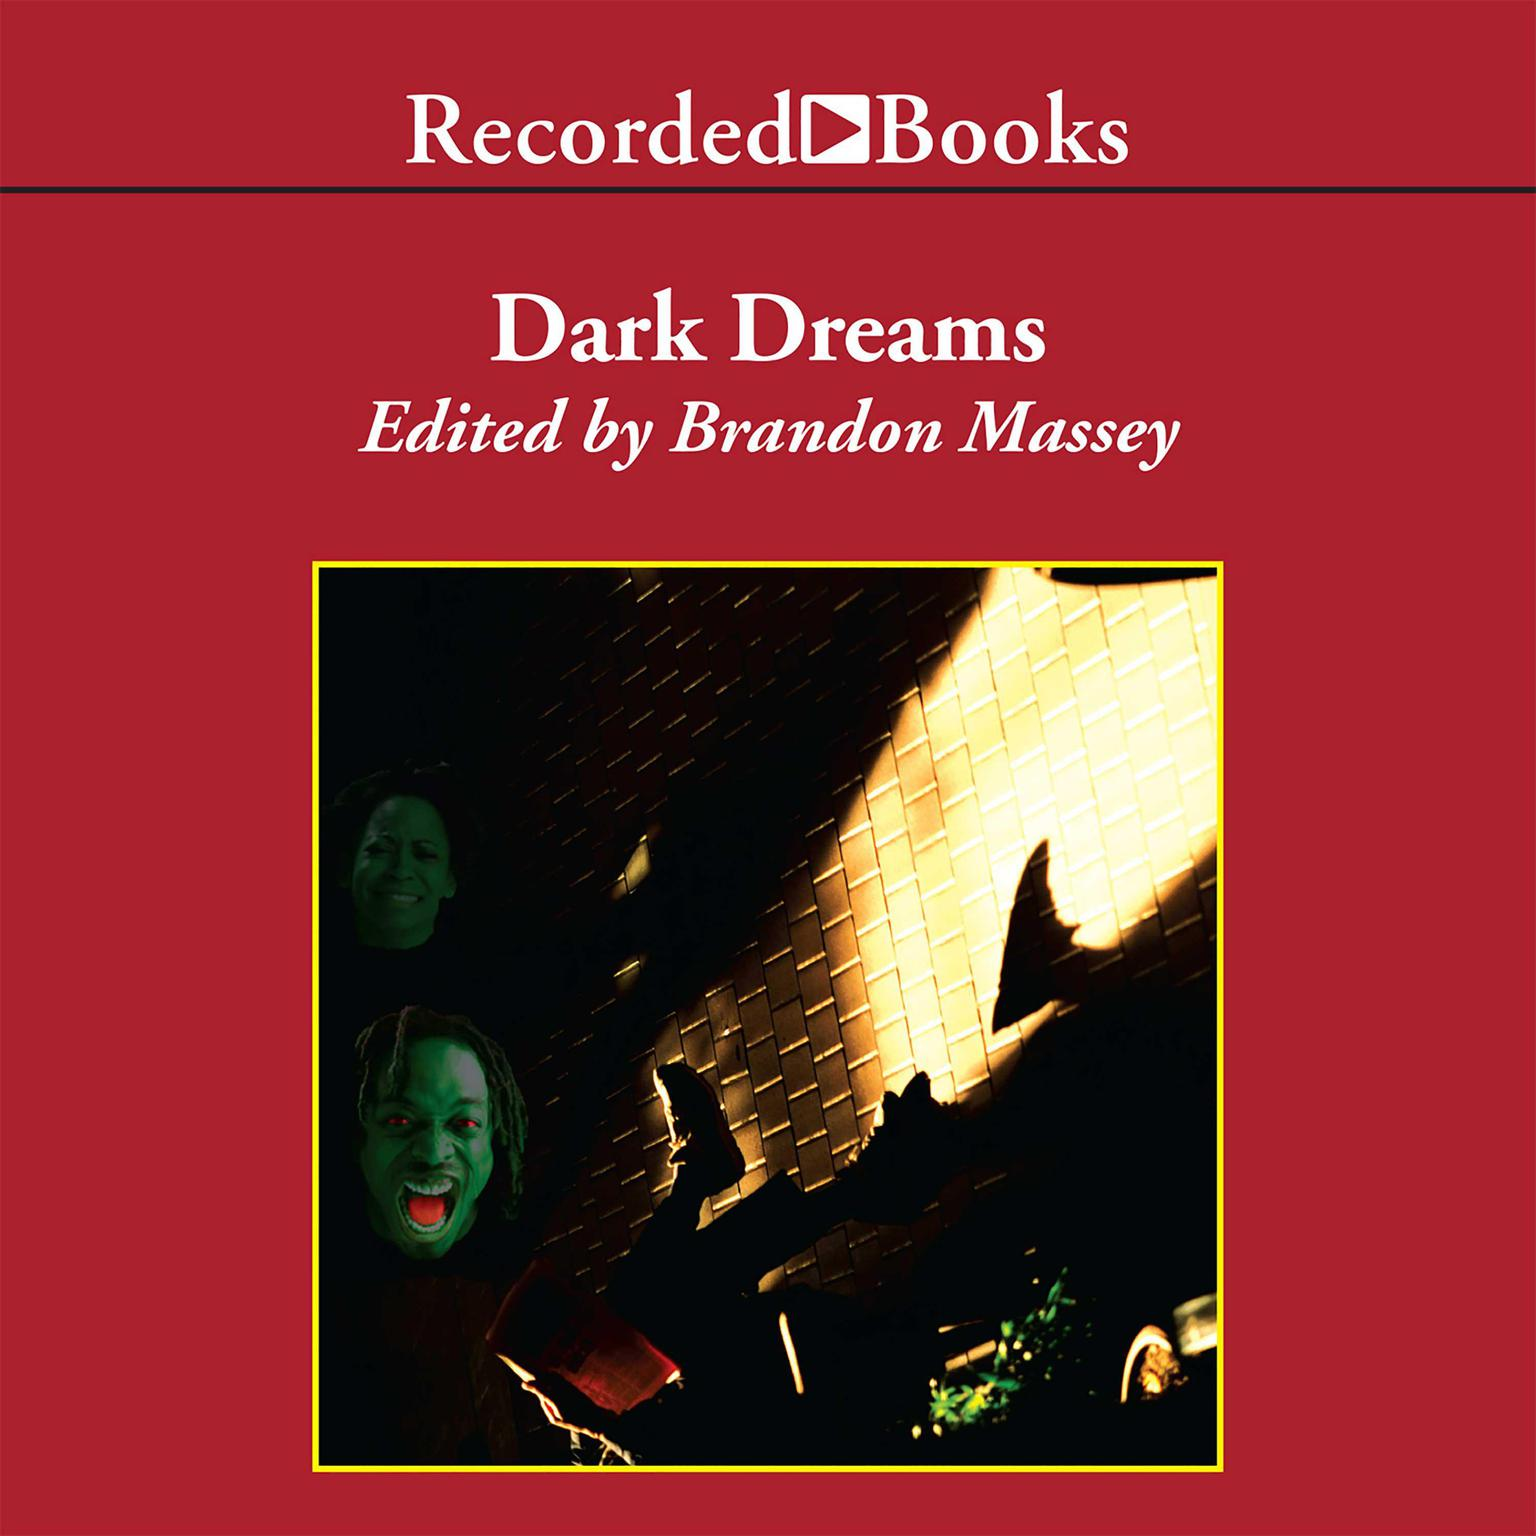 Printable Dark Dreams: A Collection of Horror and Suspense by Black Writers Audiobook Cover Art